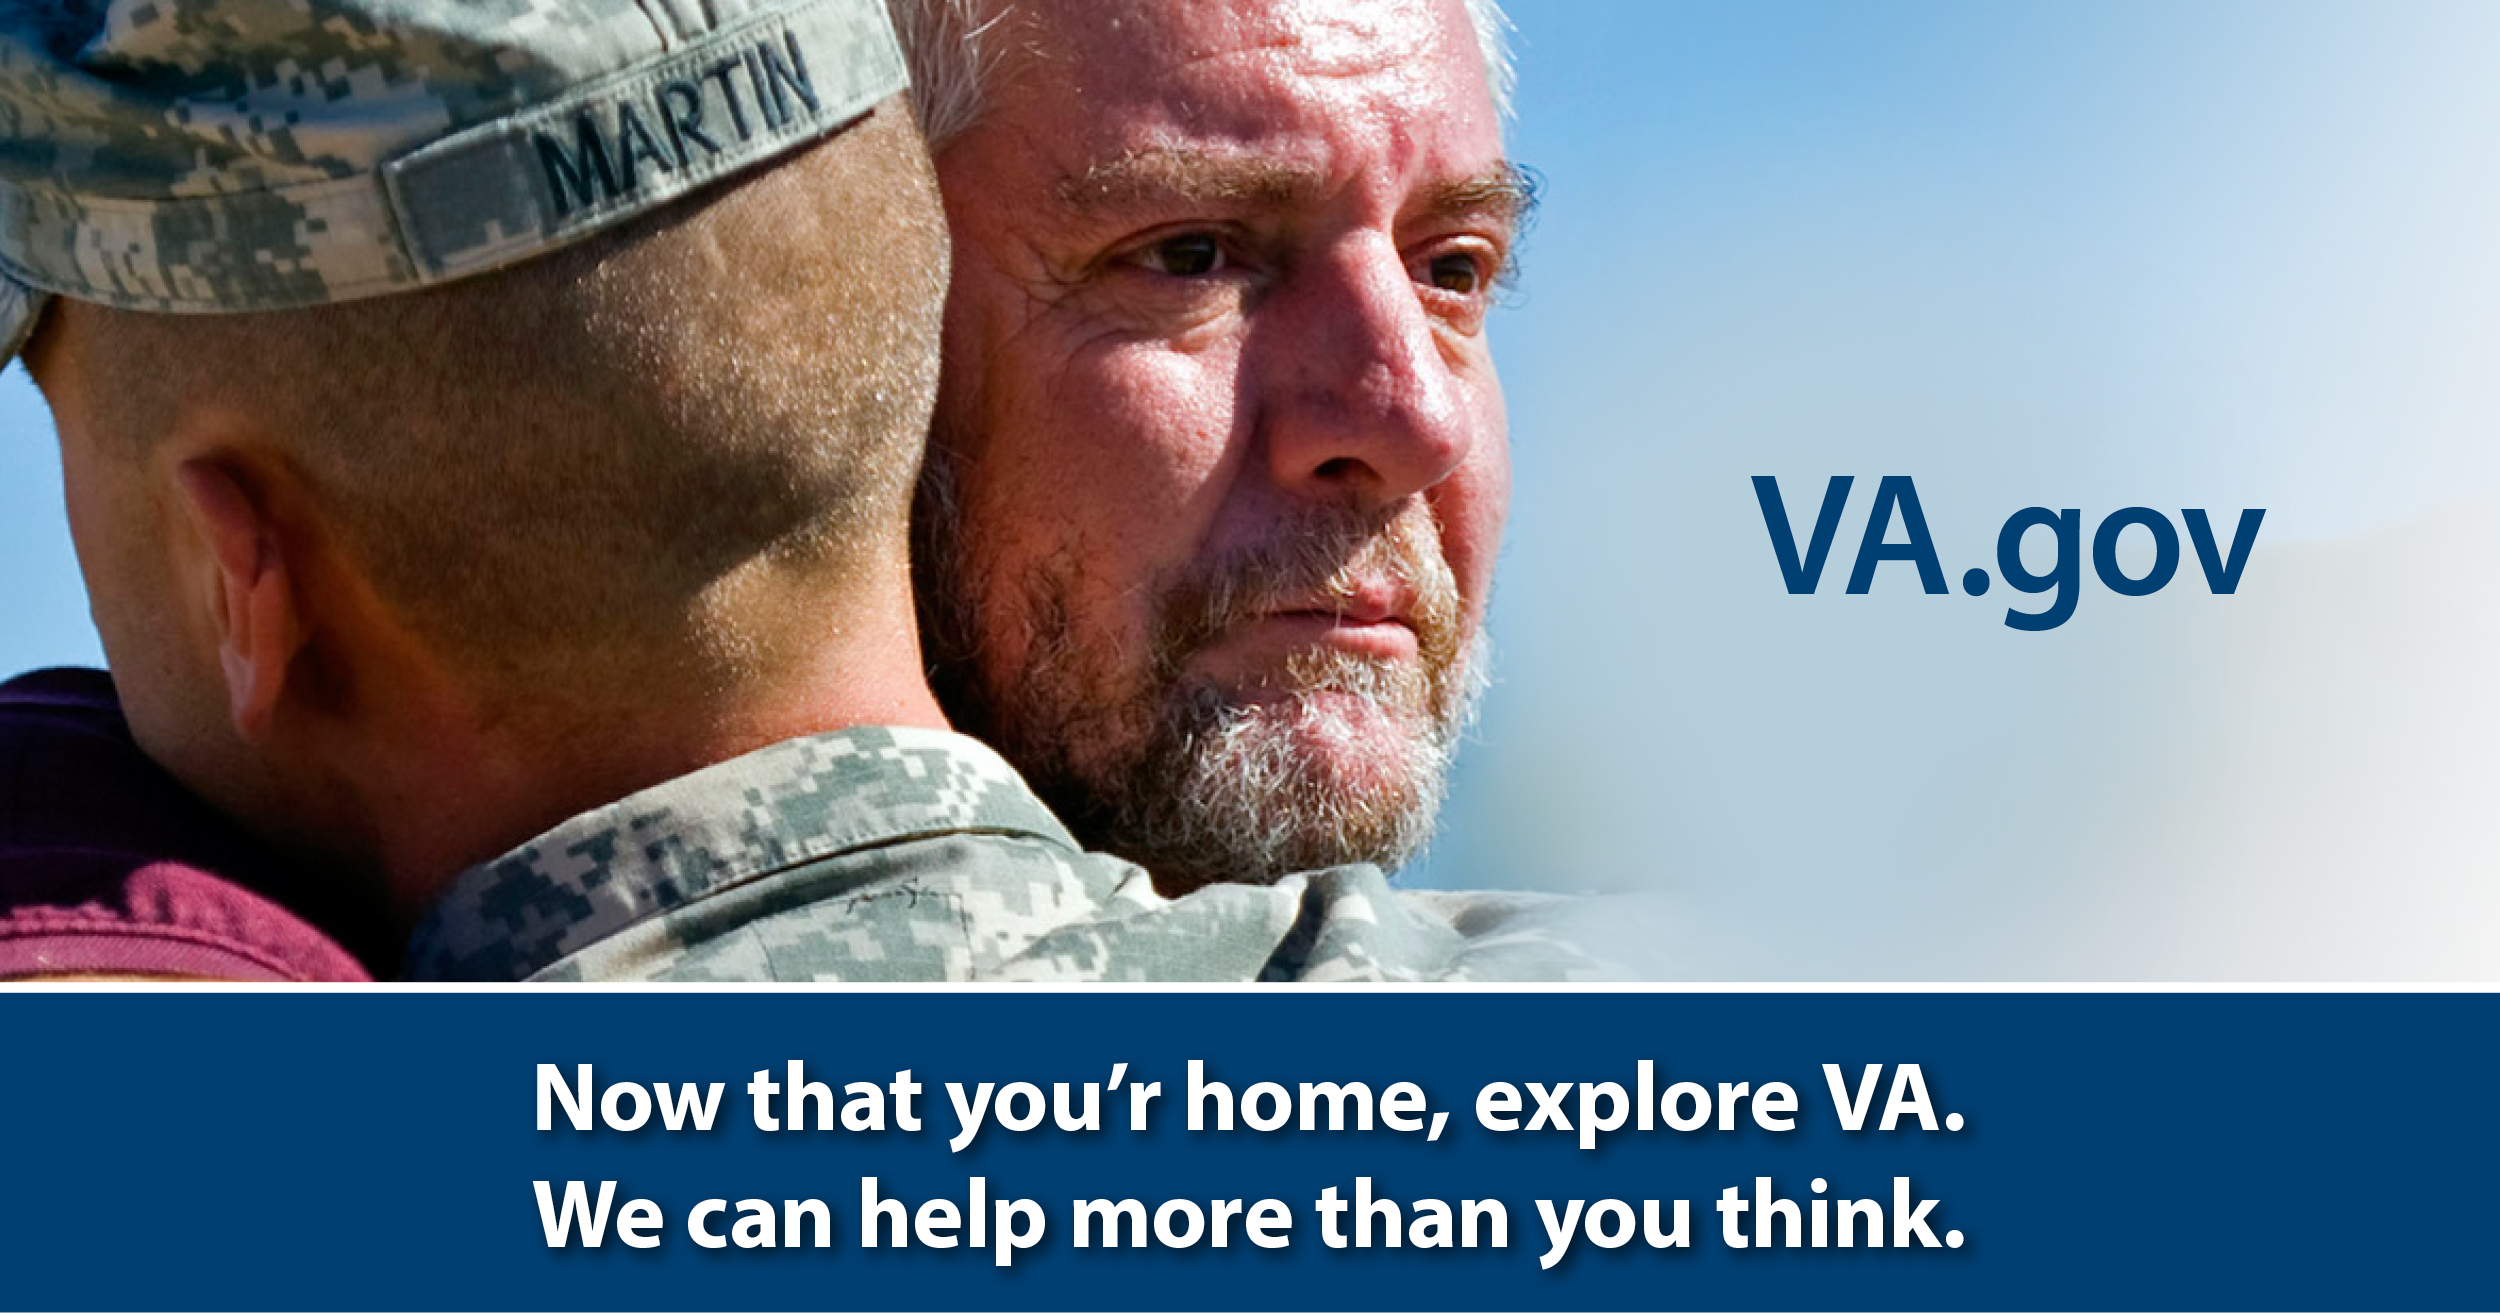 Now that you're home, explore VA. We can help more than you think.